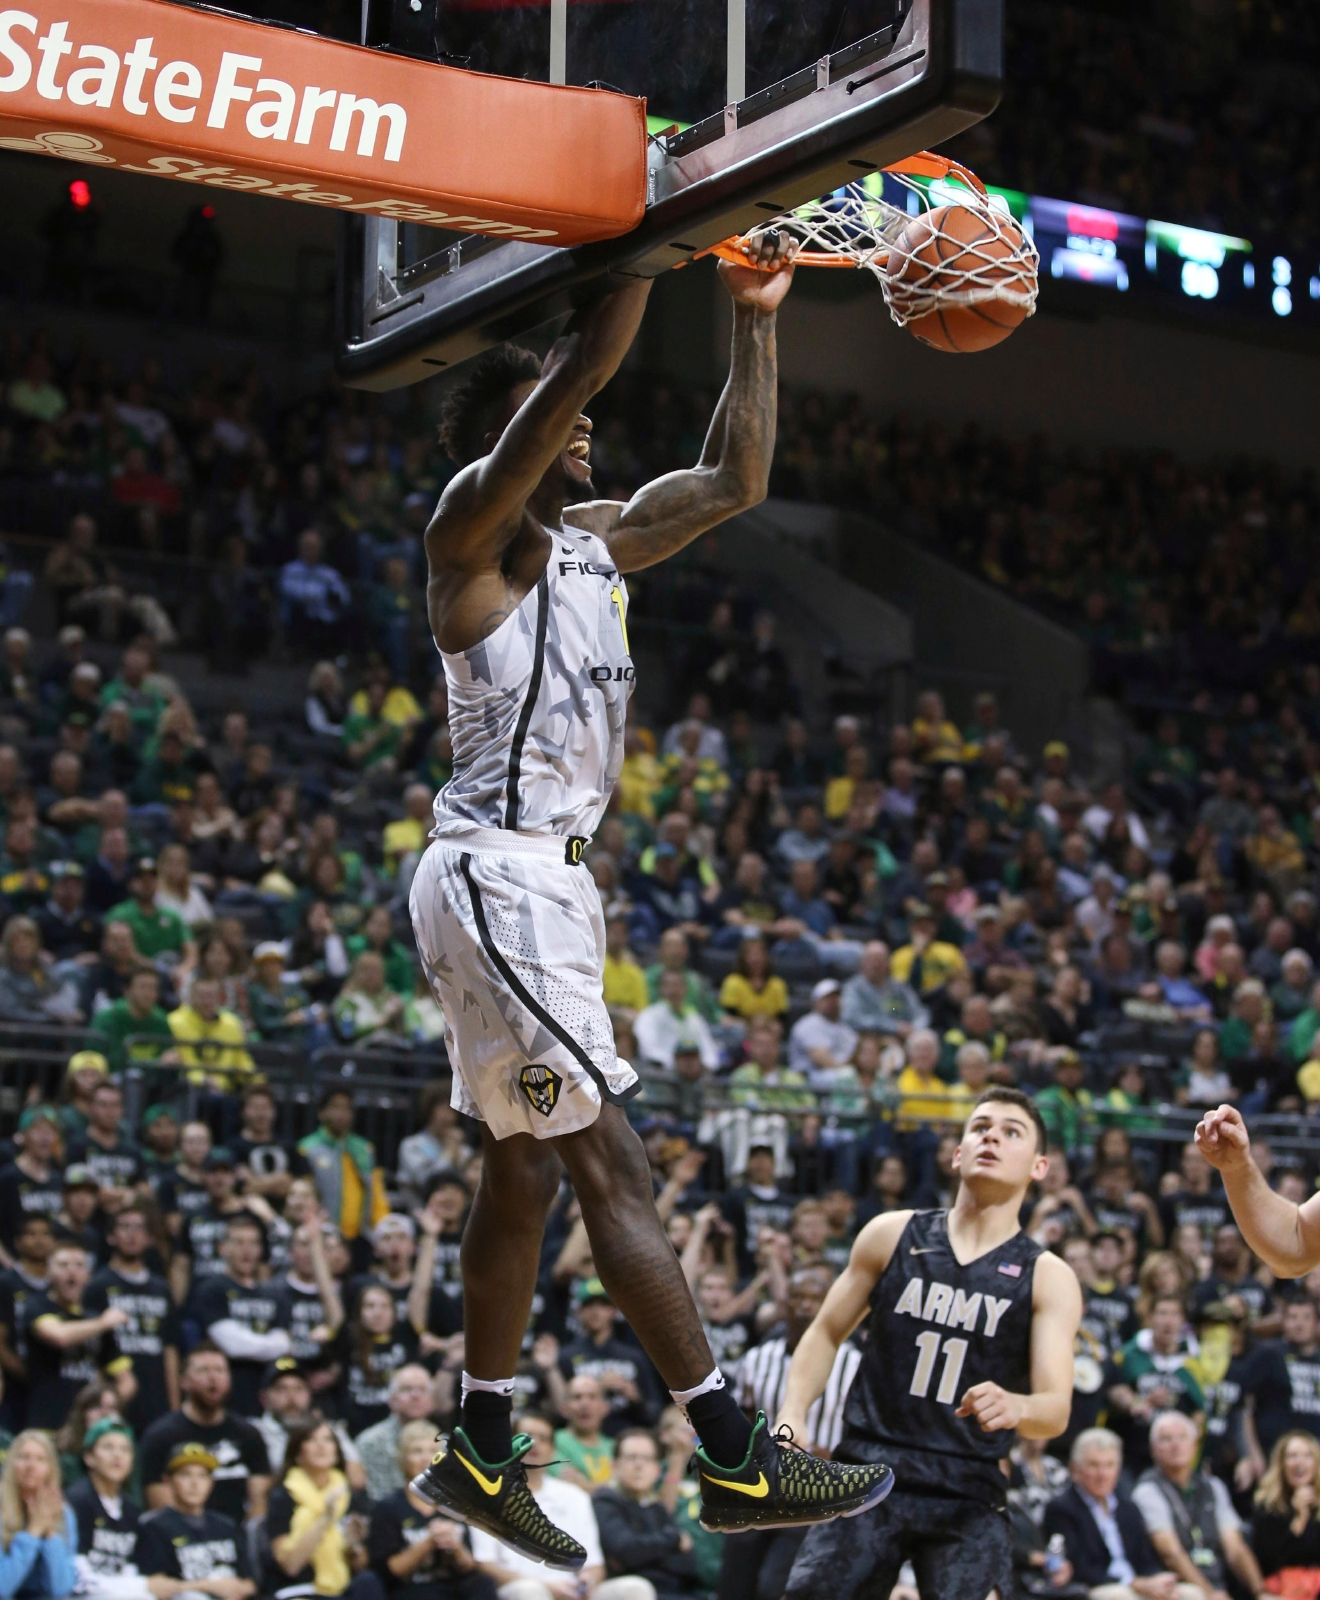 Oregon's Jordan Bell, left, dunks over Army's Thomas Funk during the second half of an NCAA college basketball game Friday, Nov. 11, 2016, in Eugene, Ore. (AP Photo/Chris Pietsch)